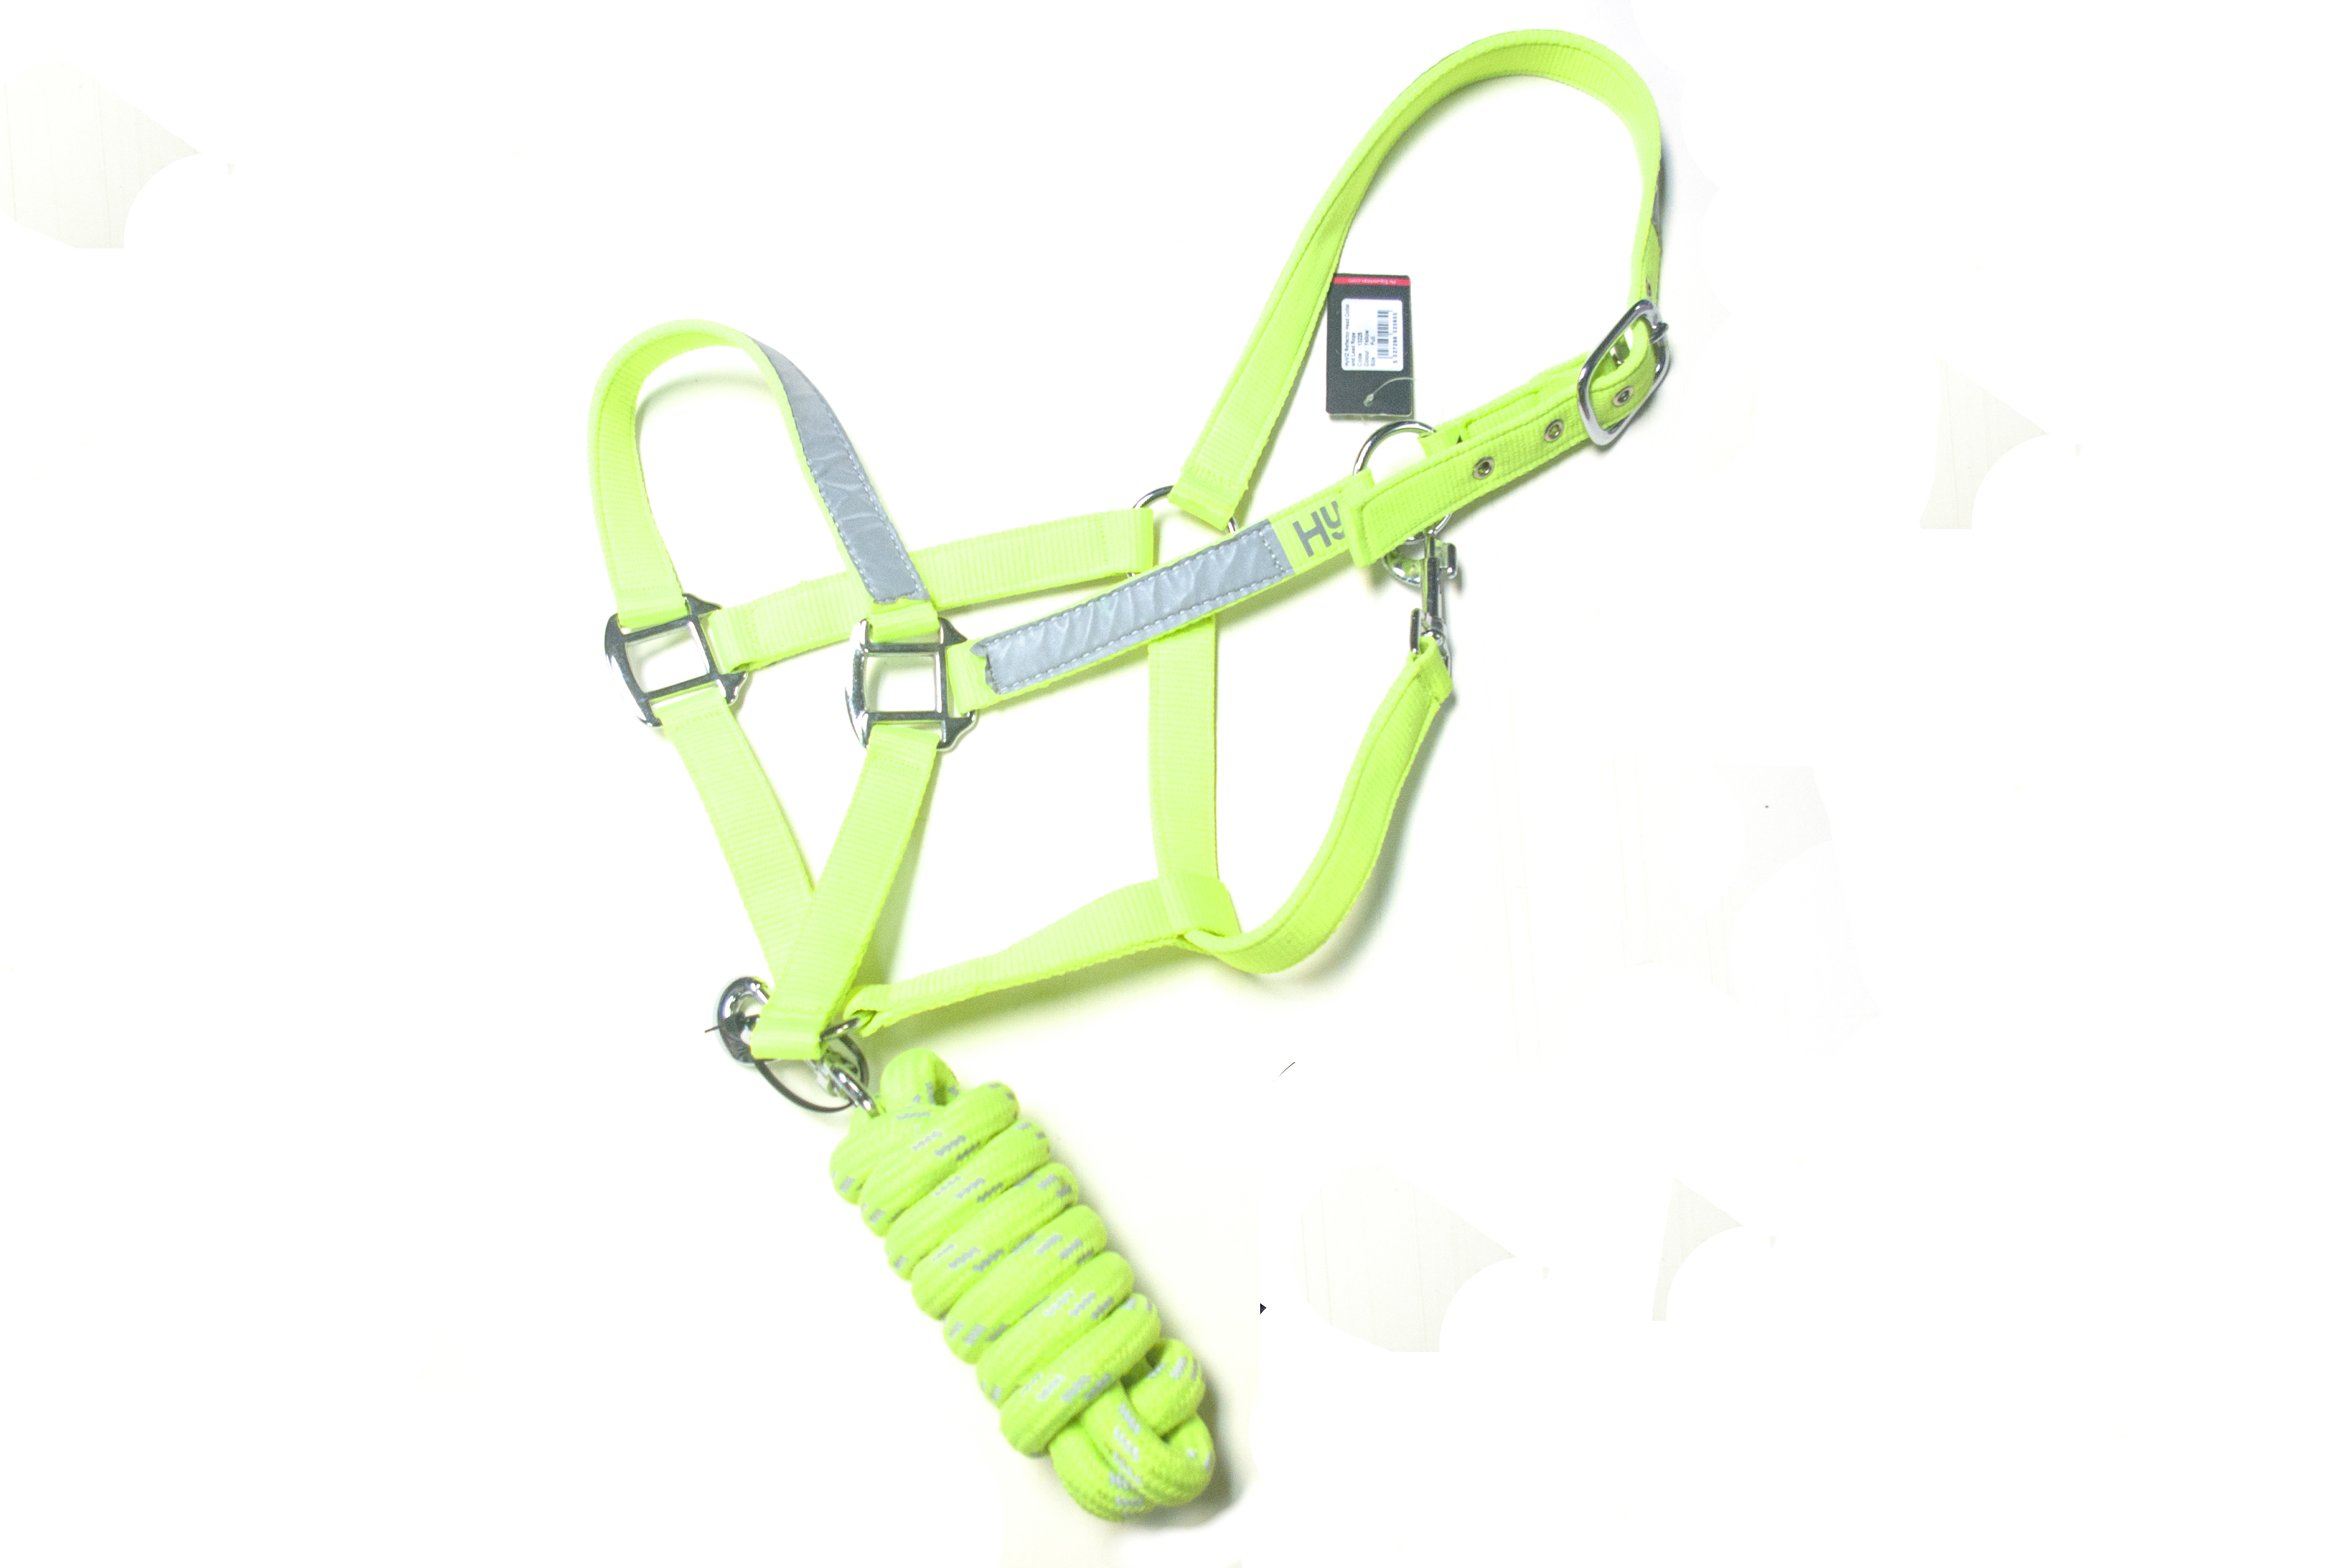 Hy Hi Vis headcollar and lead rope set